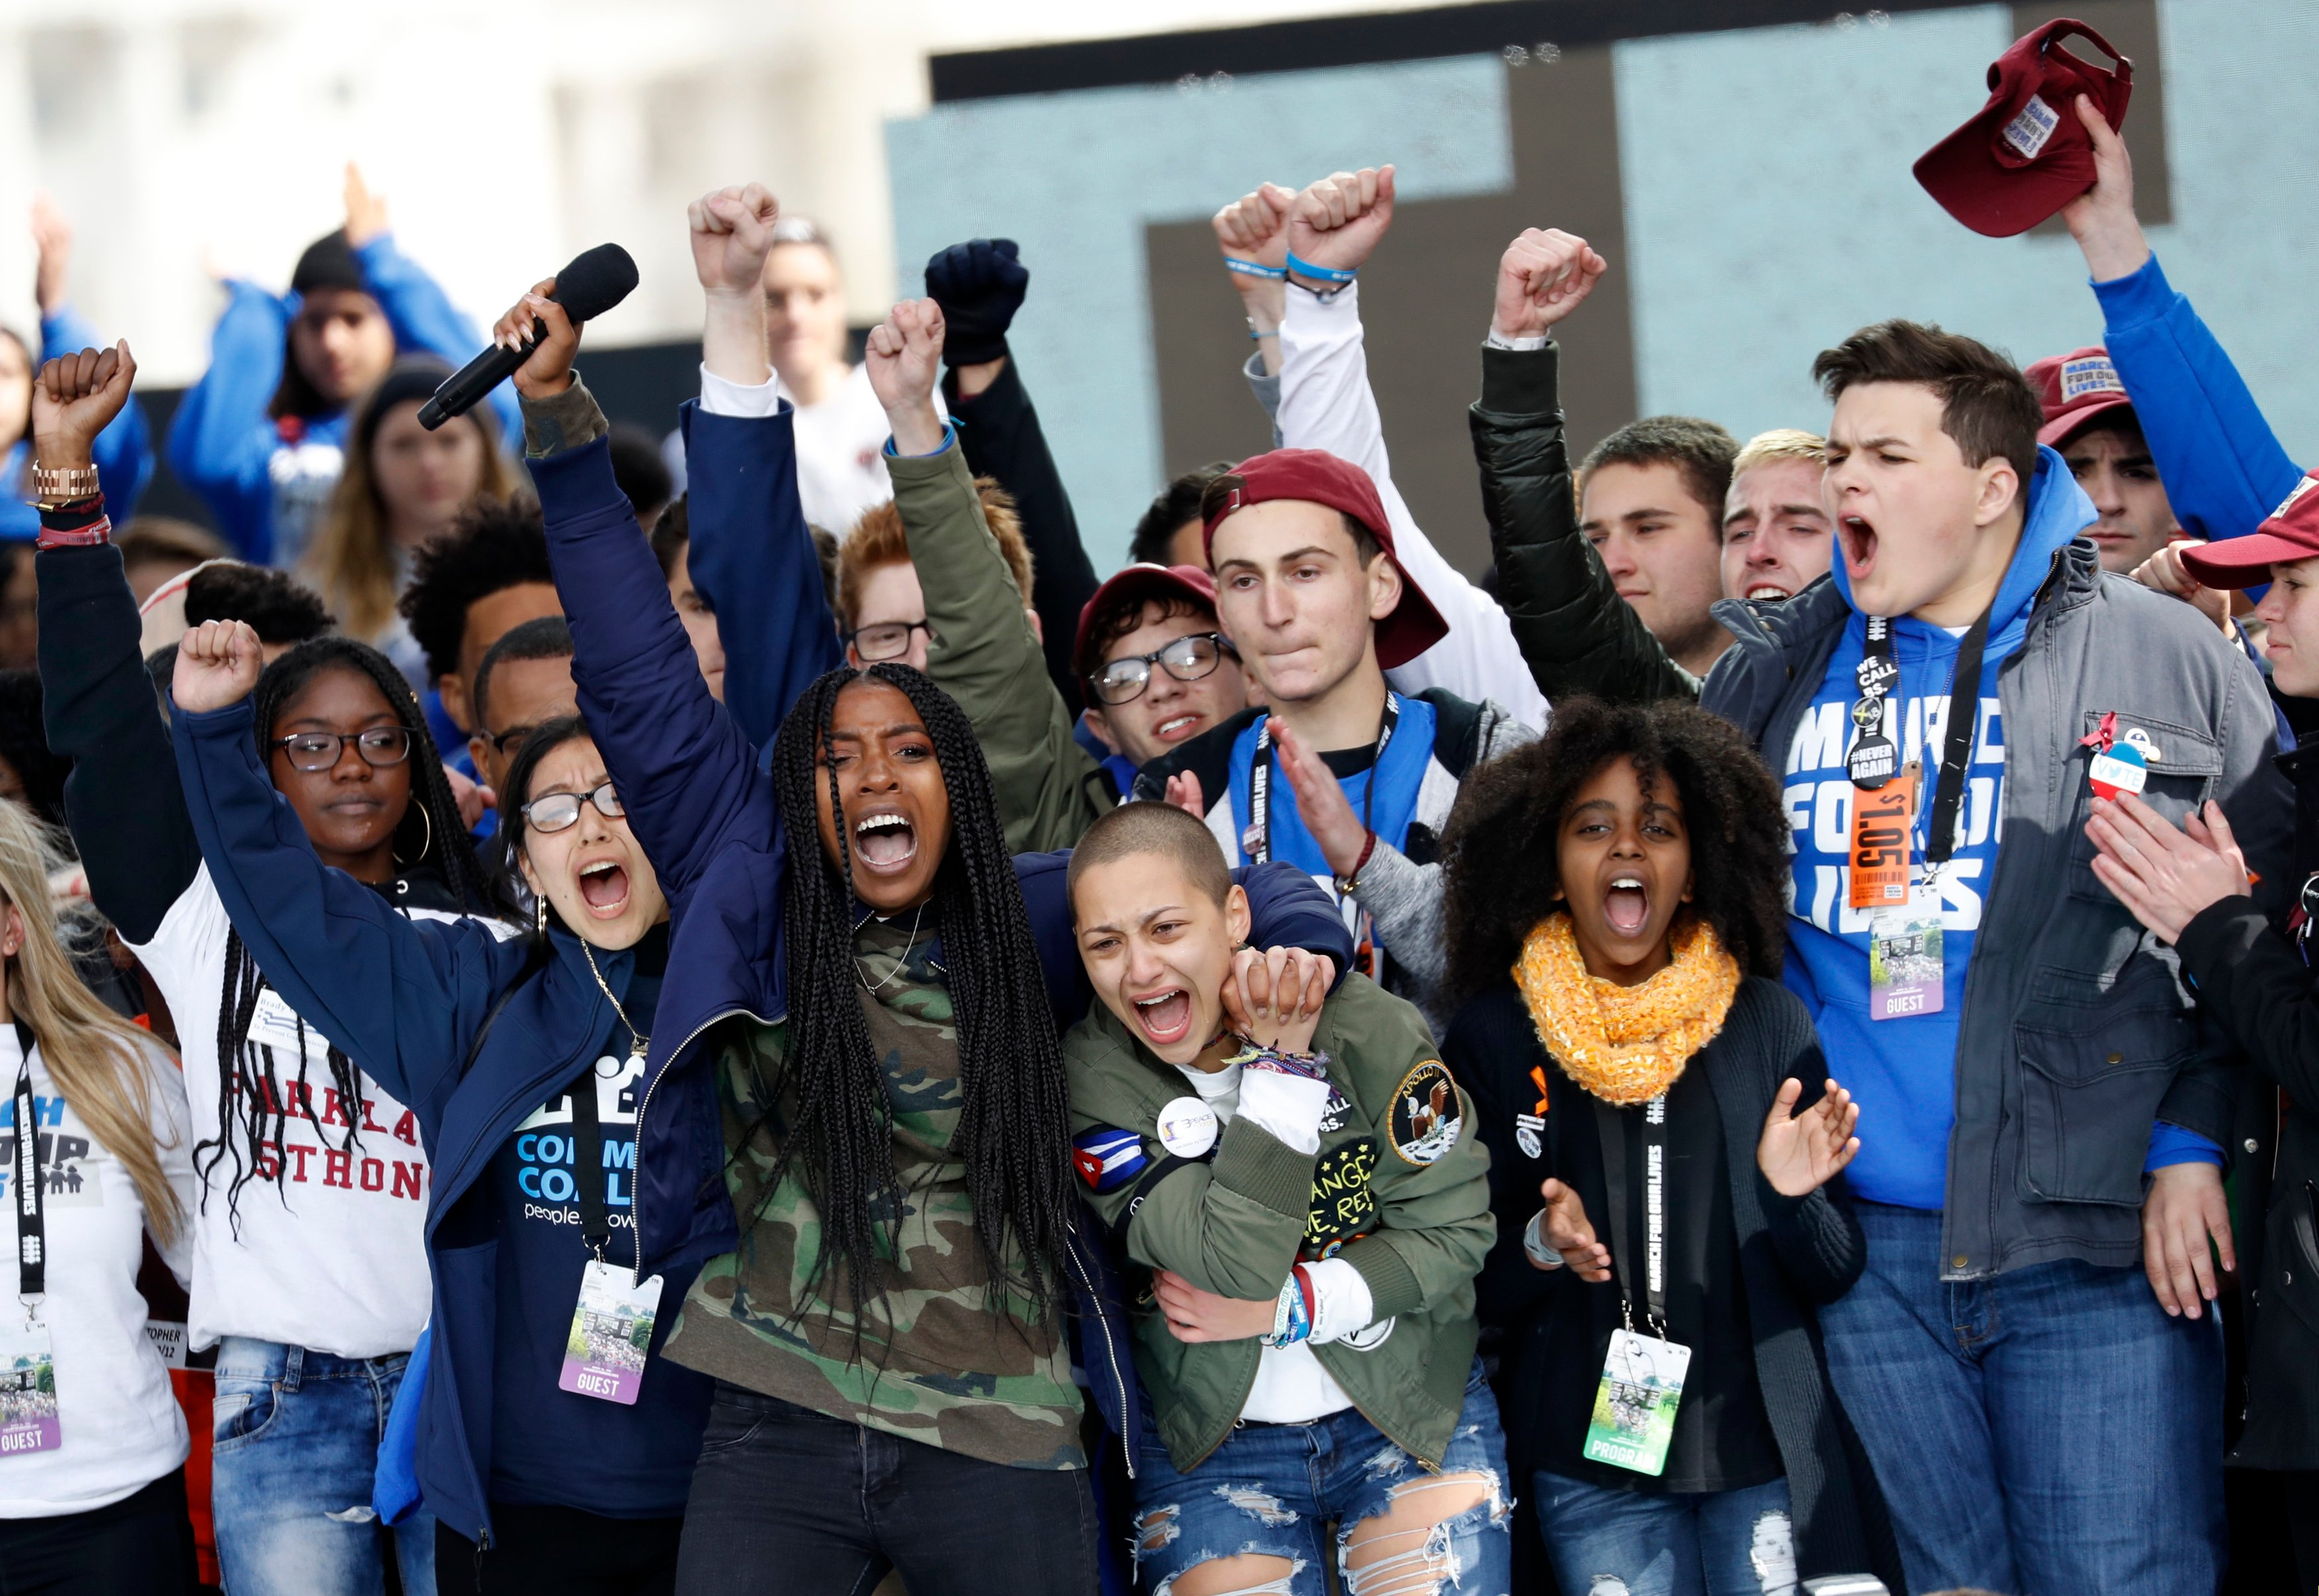 "Students and shooting survivors Tyra Hemans and Emma Gonzalez (3rd from R), from Marjory Stoneman Douglas High School in Parkland, Florida, and 11-year-old Naomi Wadler of Alexandria, Virginia (2nd from R), sing along with other students and shooting survivors at the conclusion of the ""March for Our Lives"" event demanding gun control after recent school shootings at a rally in Washington, U.S., March 24, 2018. REUTERS/Aaron P. Bernstein"